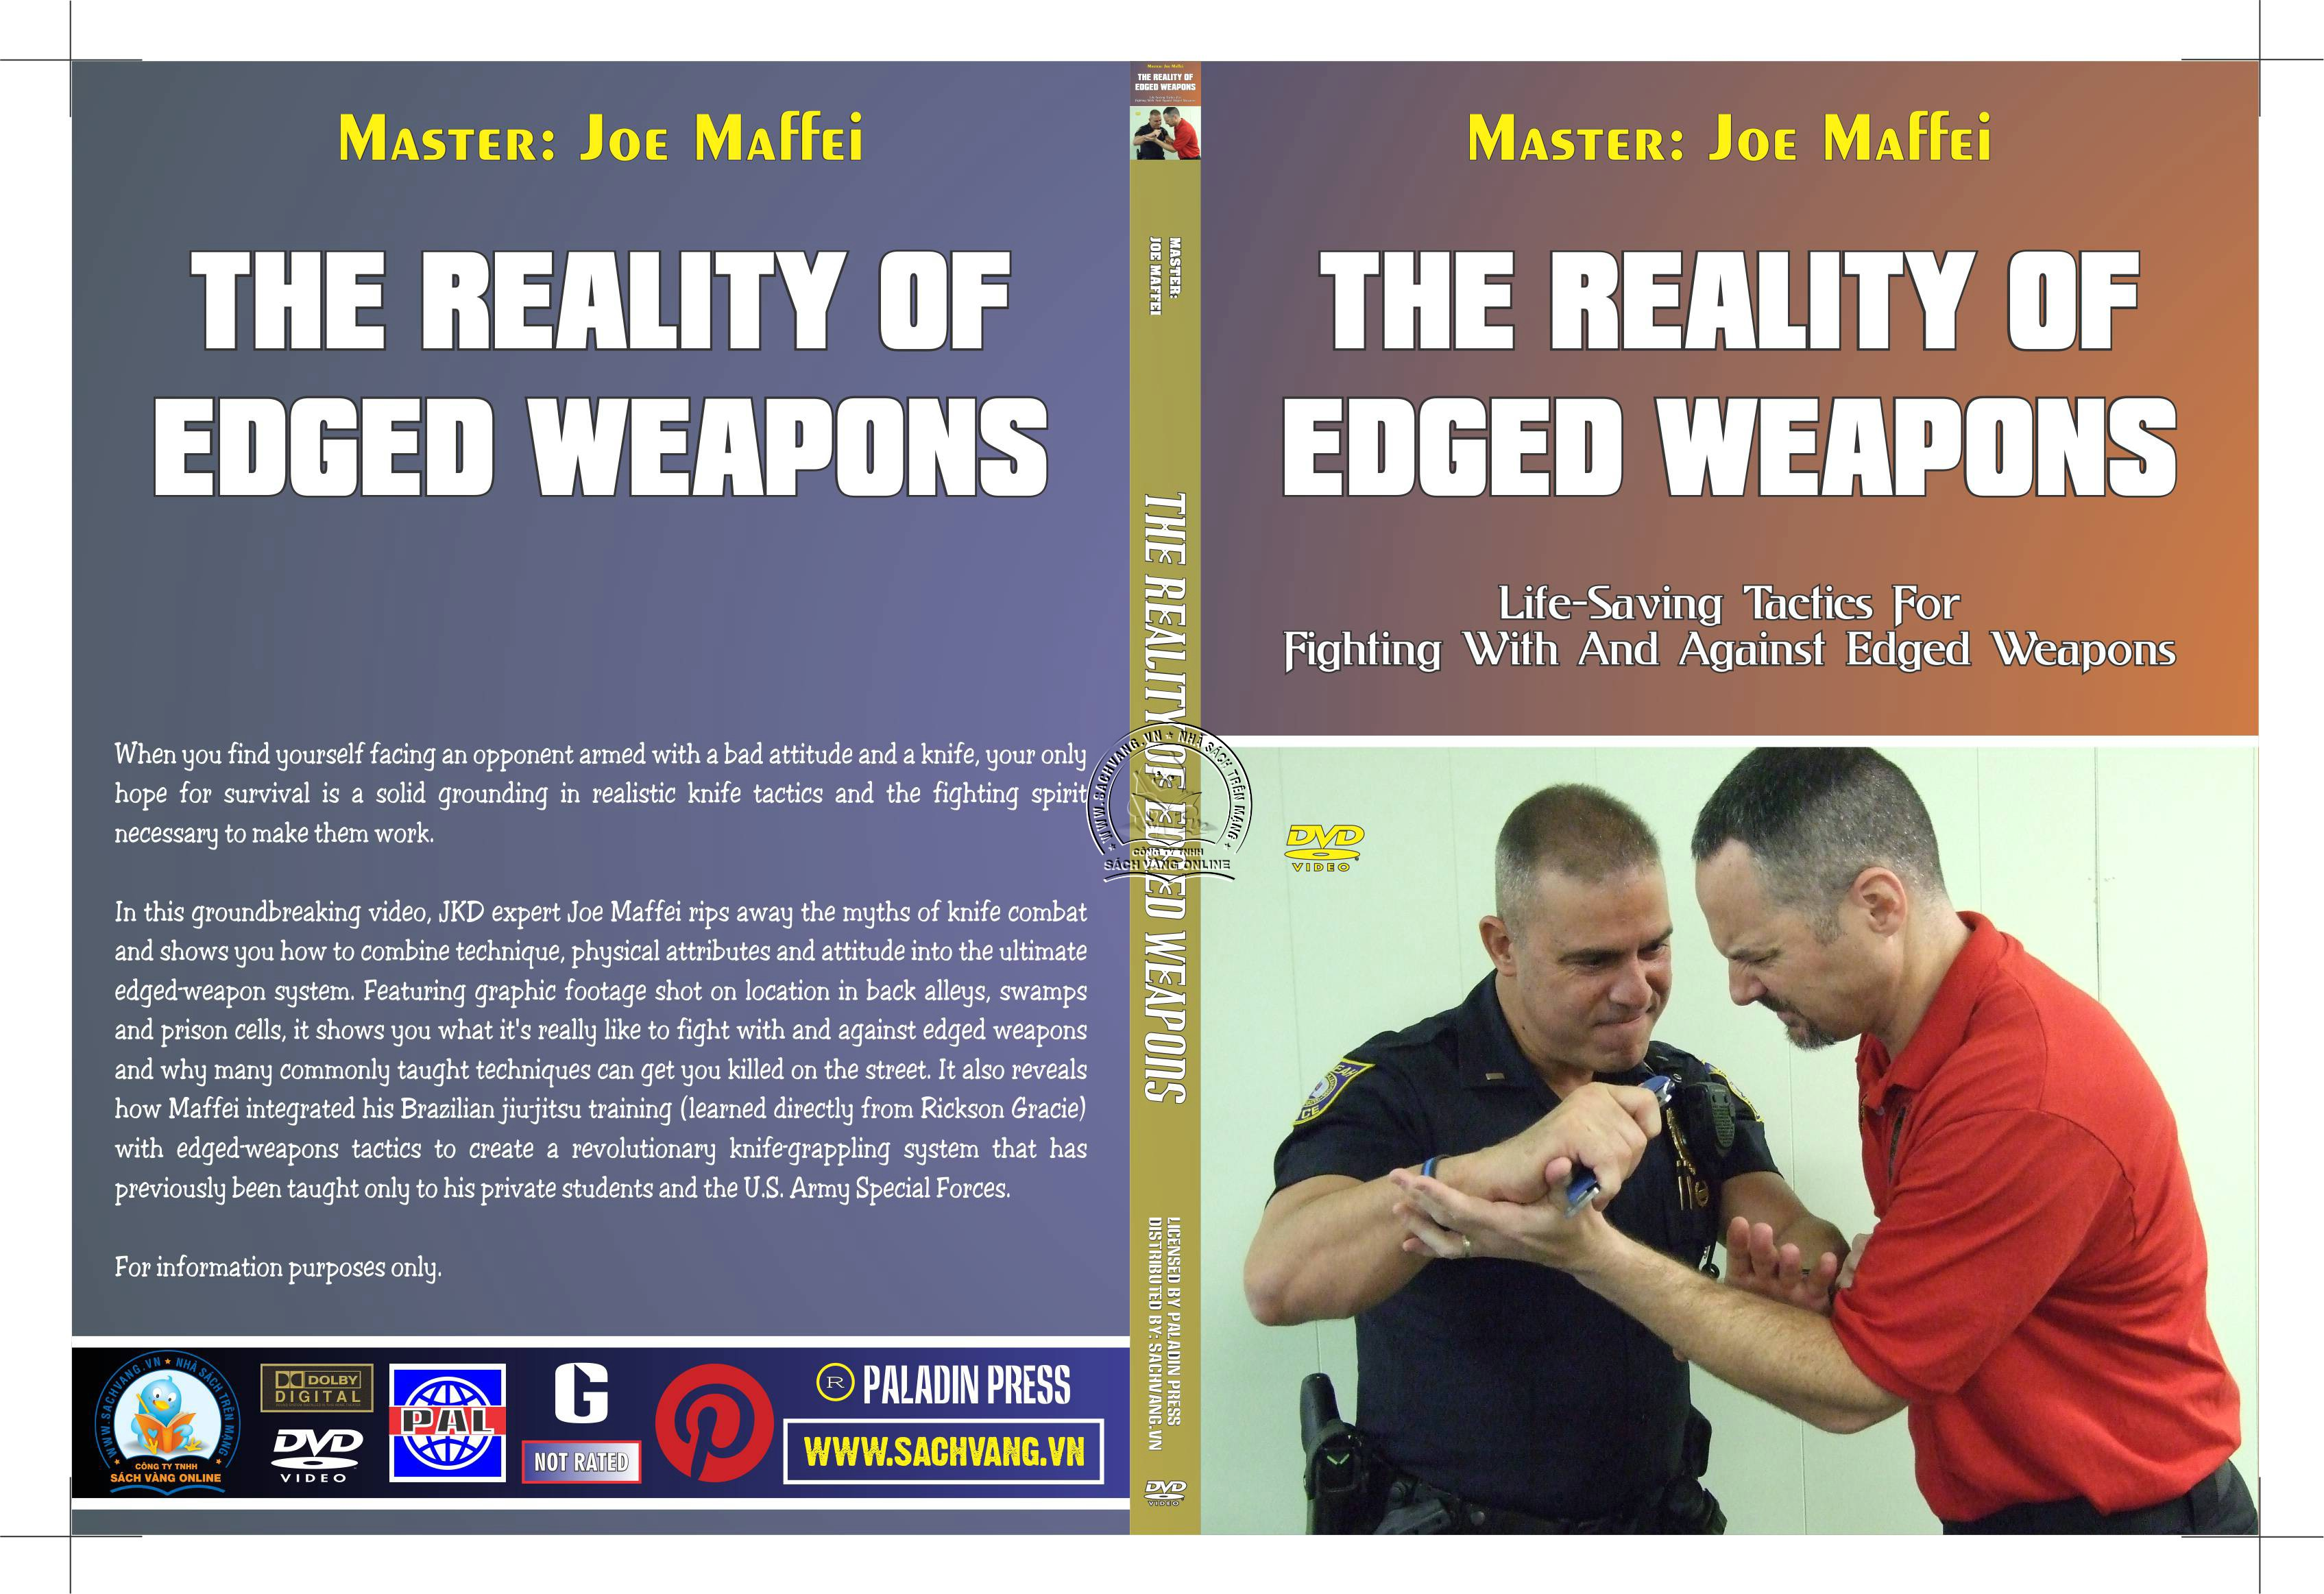 The Reality of Edged Weapons with Joe Maffei - Phương Pháp Chống Dao Thực Dụng - cover